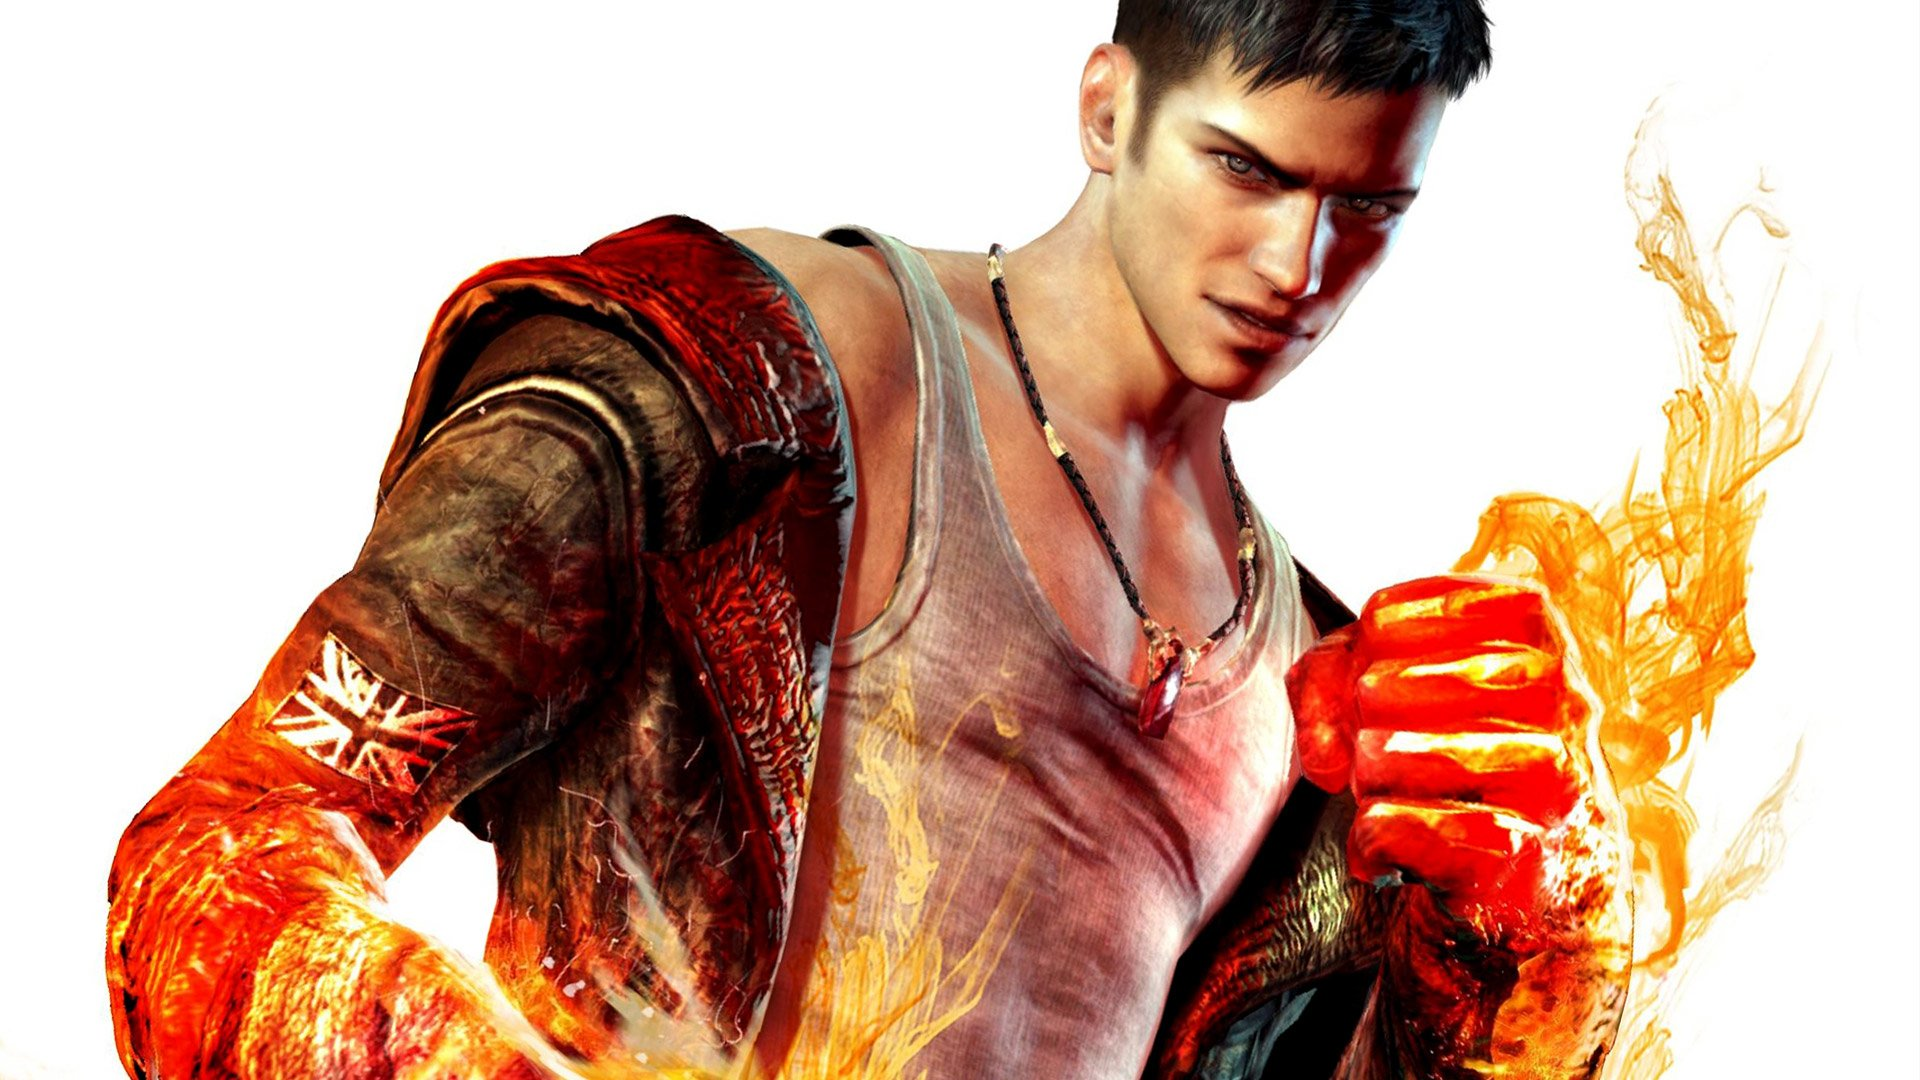 Dmc devil may cry hd wallpaper background image 1920x1080 id 334636 wallpaper abyss - Devil may cry hd pics ...